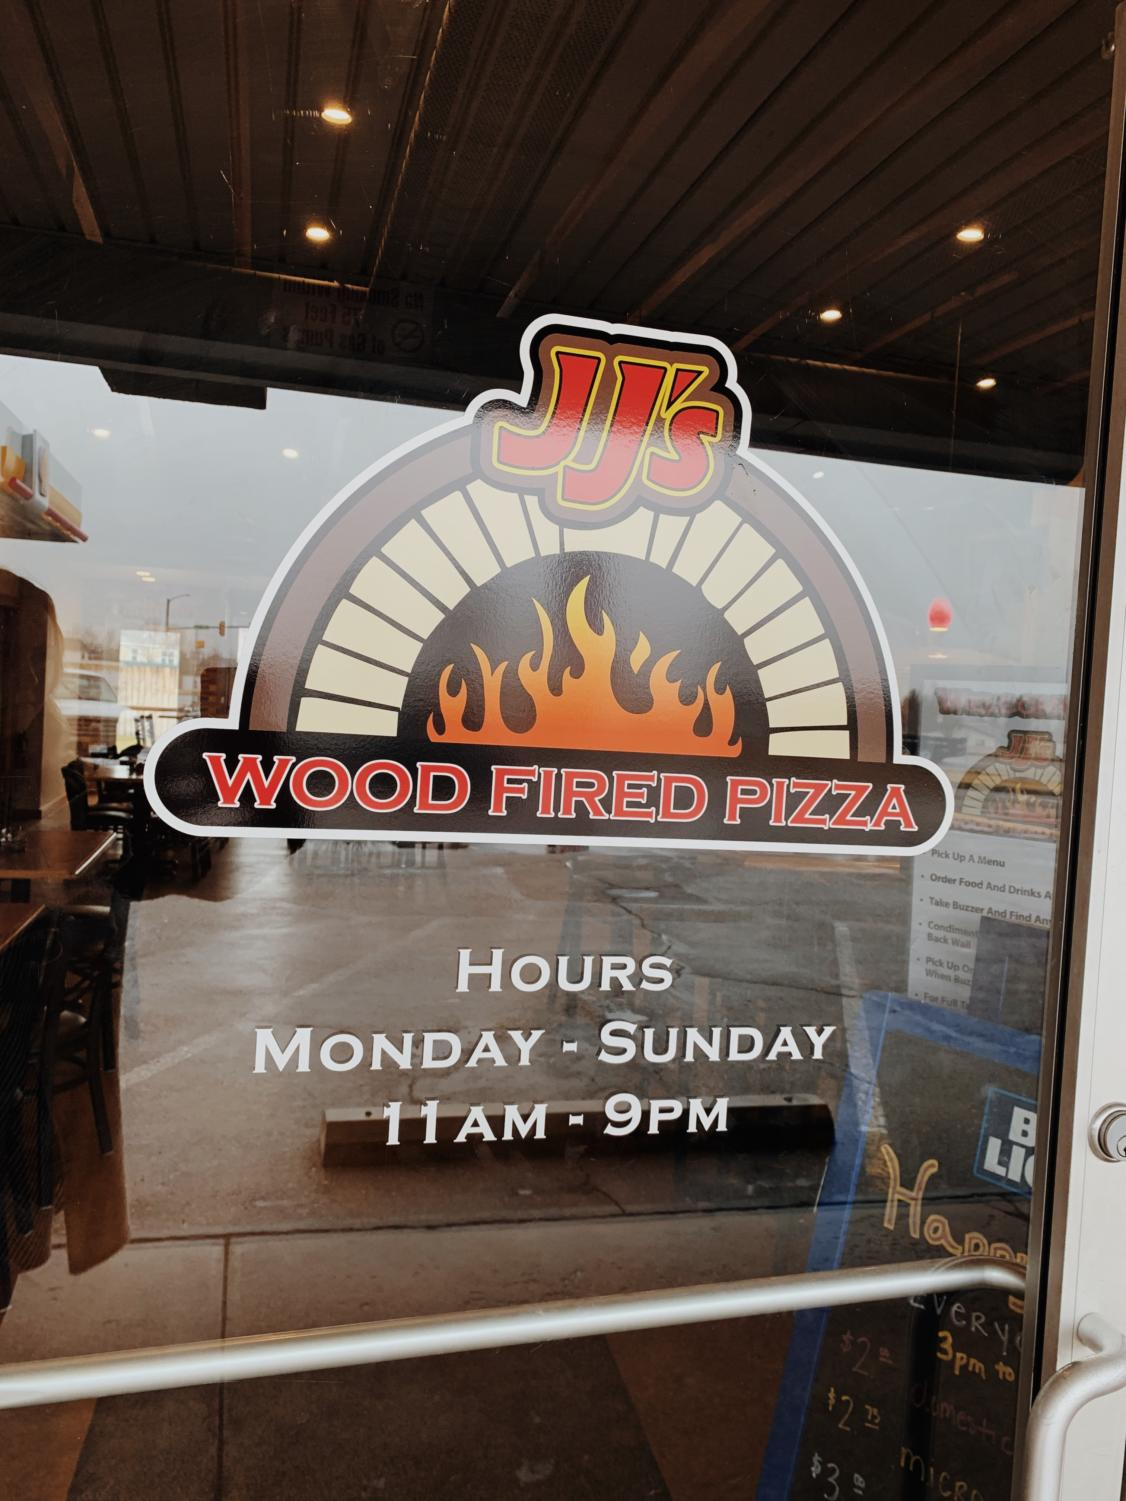 This is the front entrance at JJ's Wood Fired Pizza.